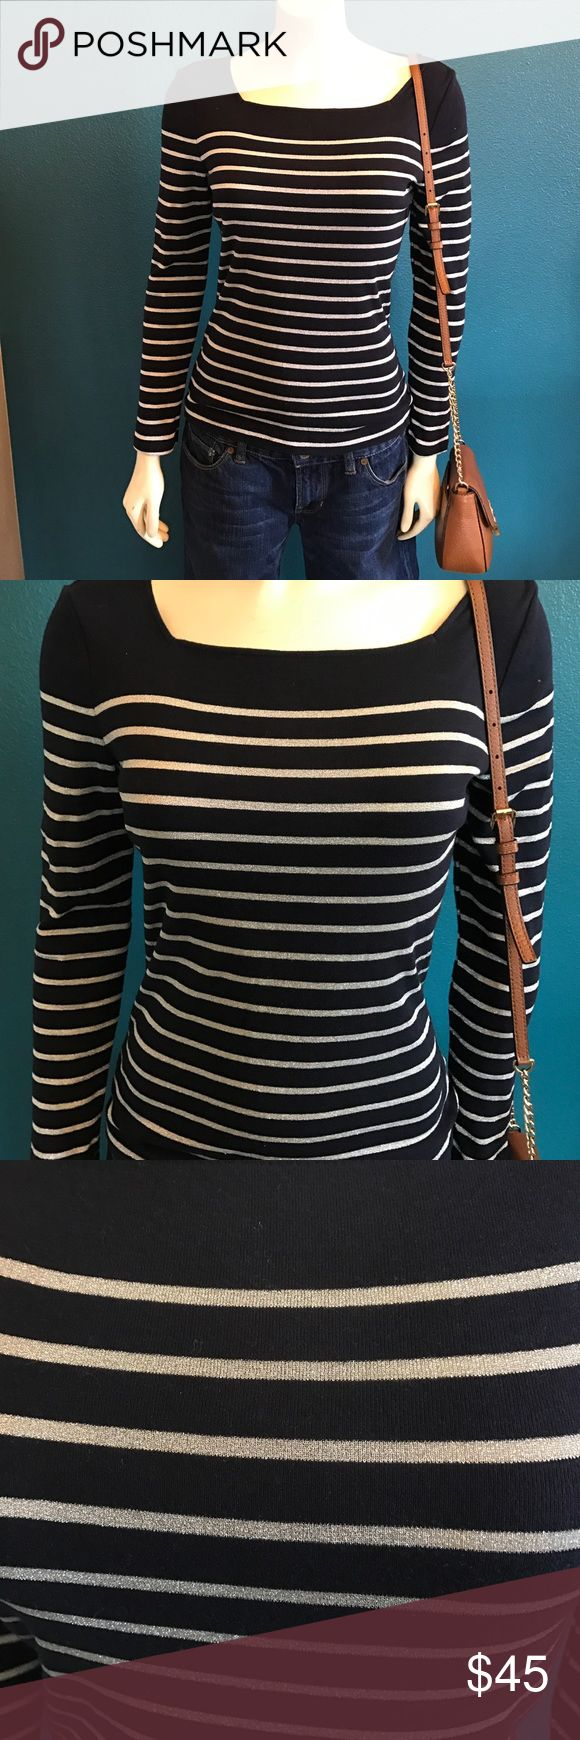 Striped Long sleeve top by Chaps This small long sleeve top by Chaps is a navy blue with silver stripes. The neckline is a very flattering square shape. Perfect for spring! Chaps Tops Tees - Long Sleeve